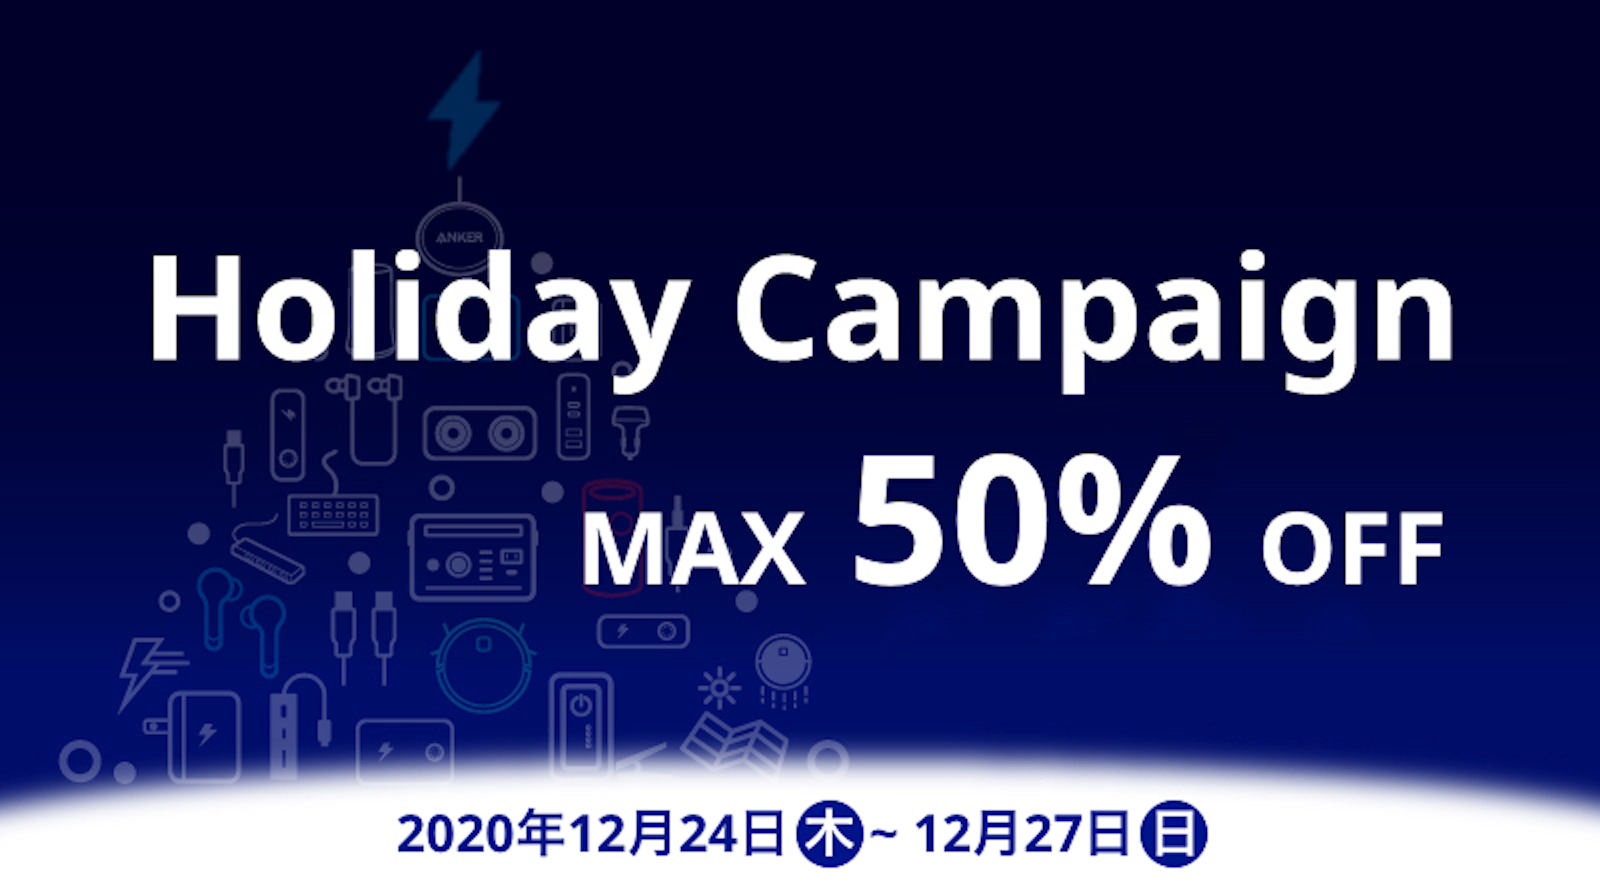 Anker Holiday Campaign 50Percent off